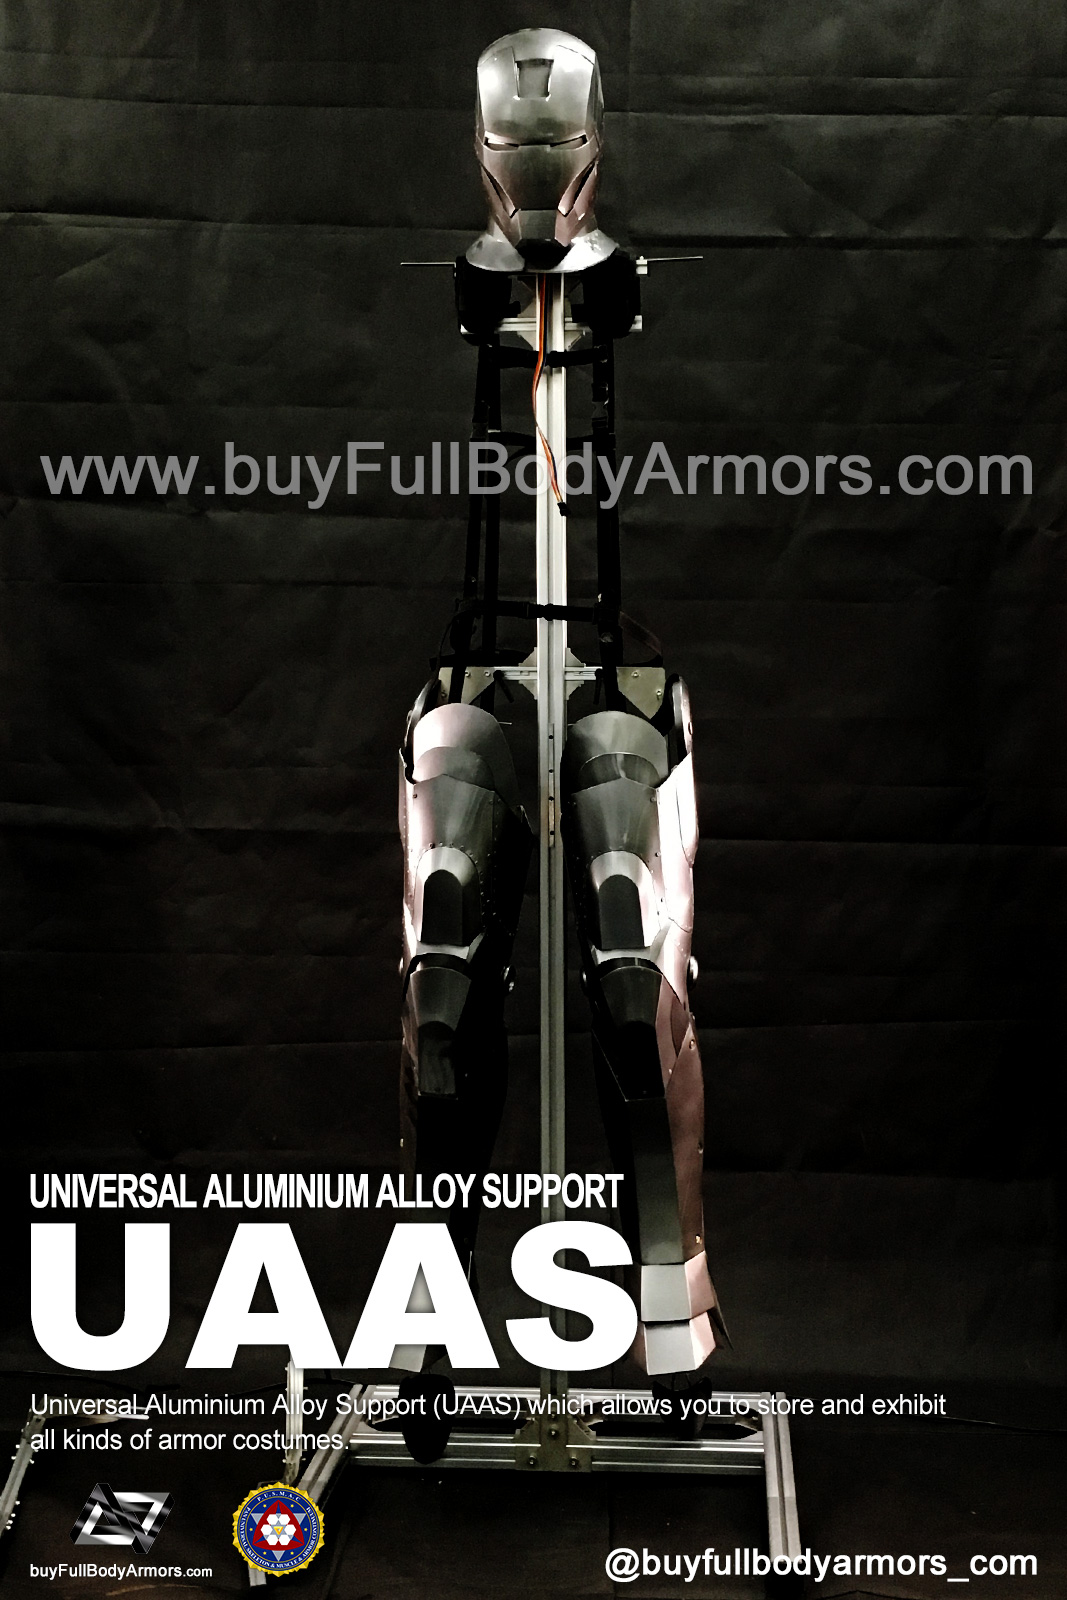 Put a Iron Man Mark II 2 Armor Costume on to a Universal Aluminium Alloy Support (UAAS) 2